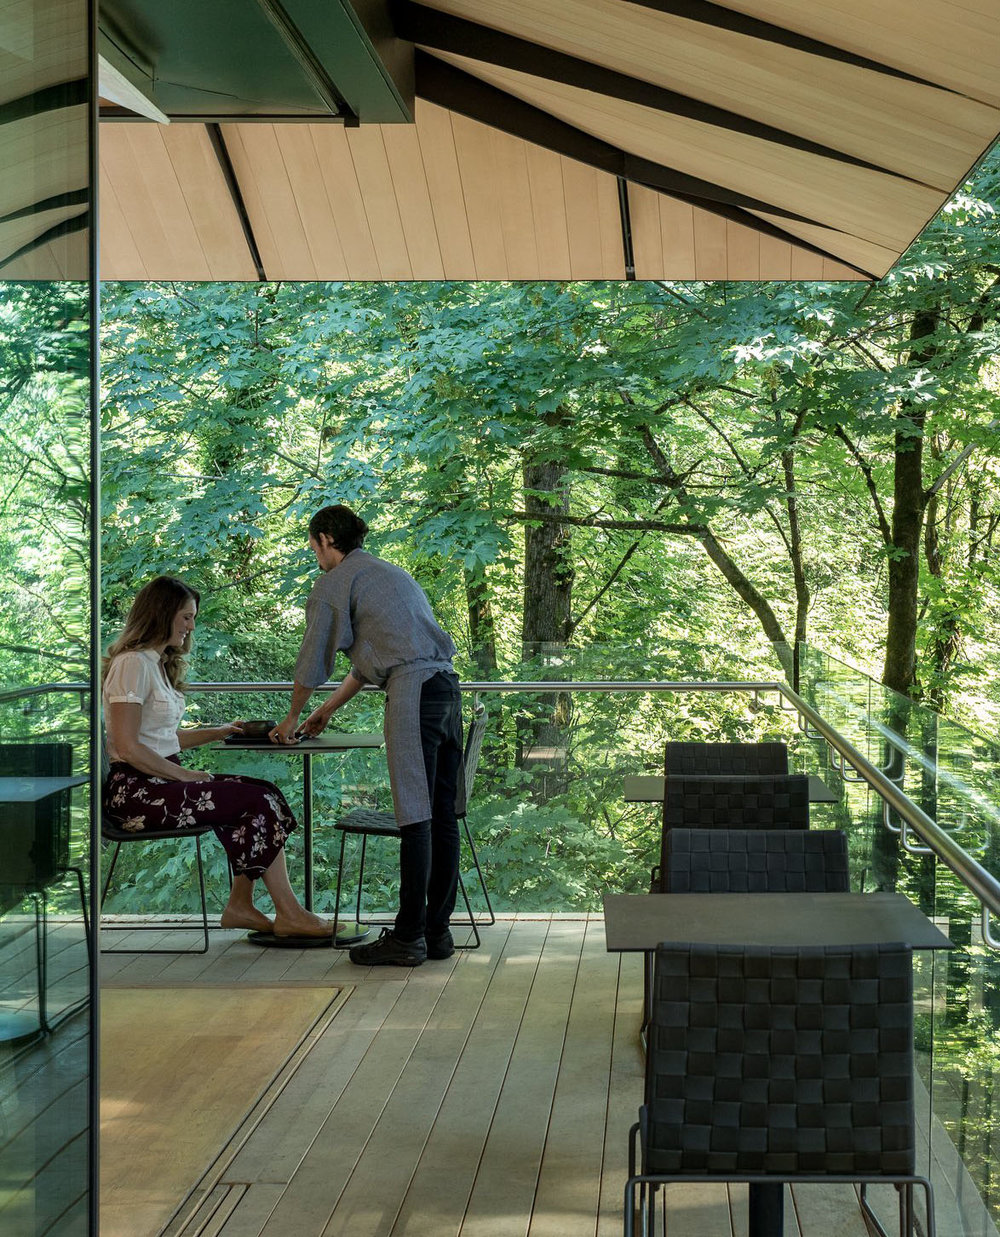 ENJOY TEA AT THE UMAMI CAFÉ - The Umami Café provides a place for you to relax and refresh while at the Garden. Here, you will experience the pairing of world class Japanese tea with traditional gracious, attentive service, and delicious edible delights.Suggested time: 30-60 minutes(Photo by James Florio)